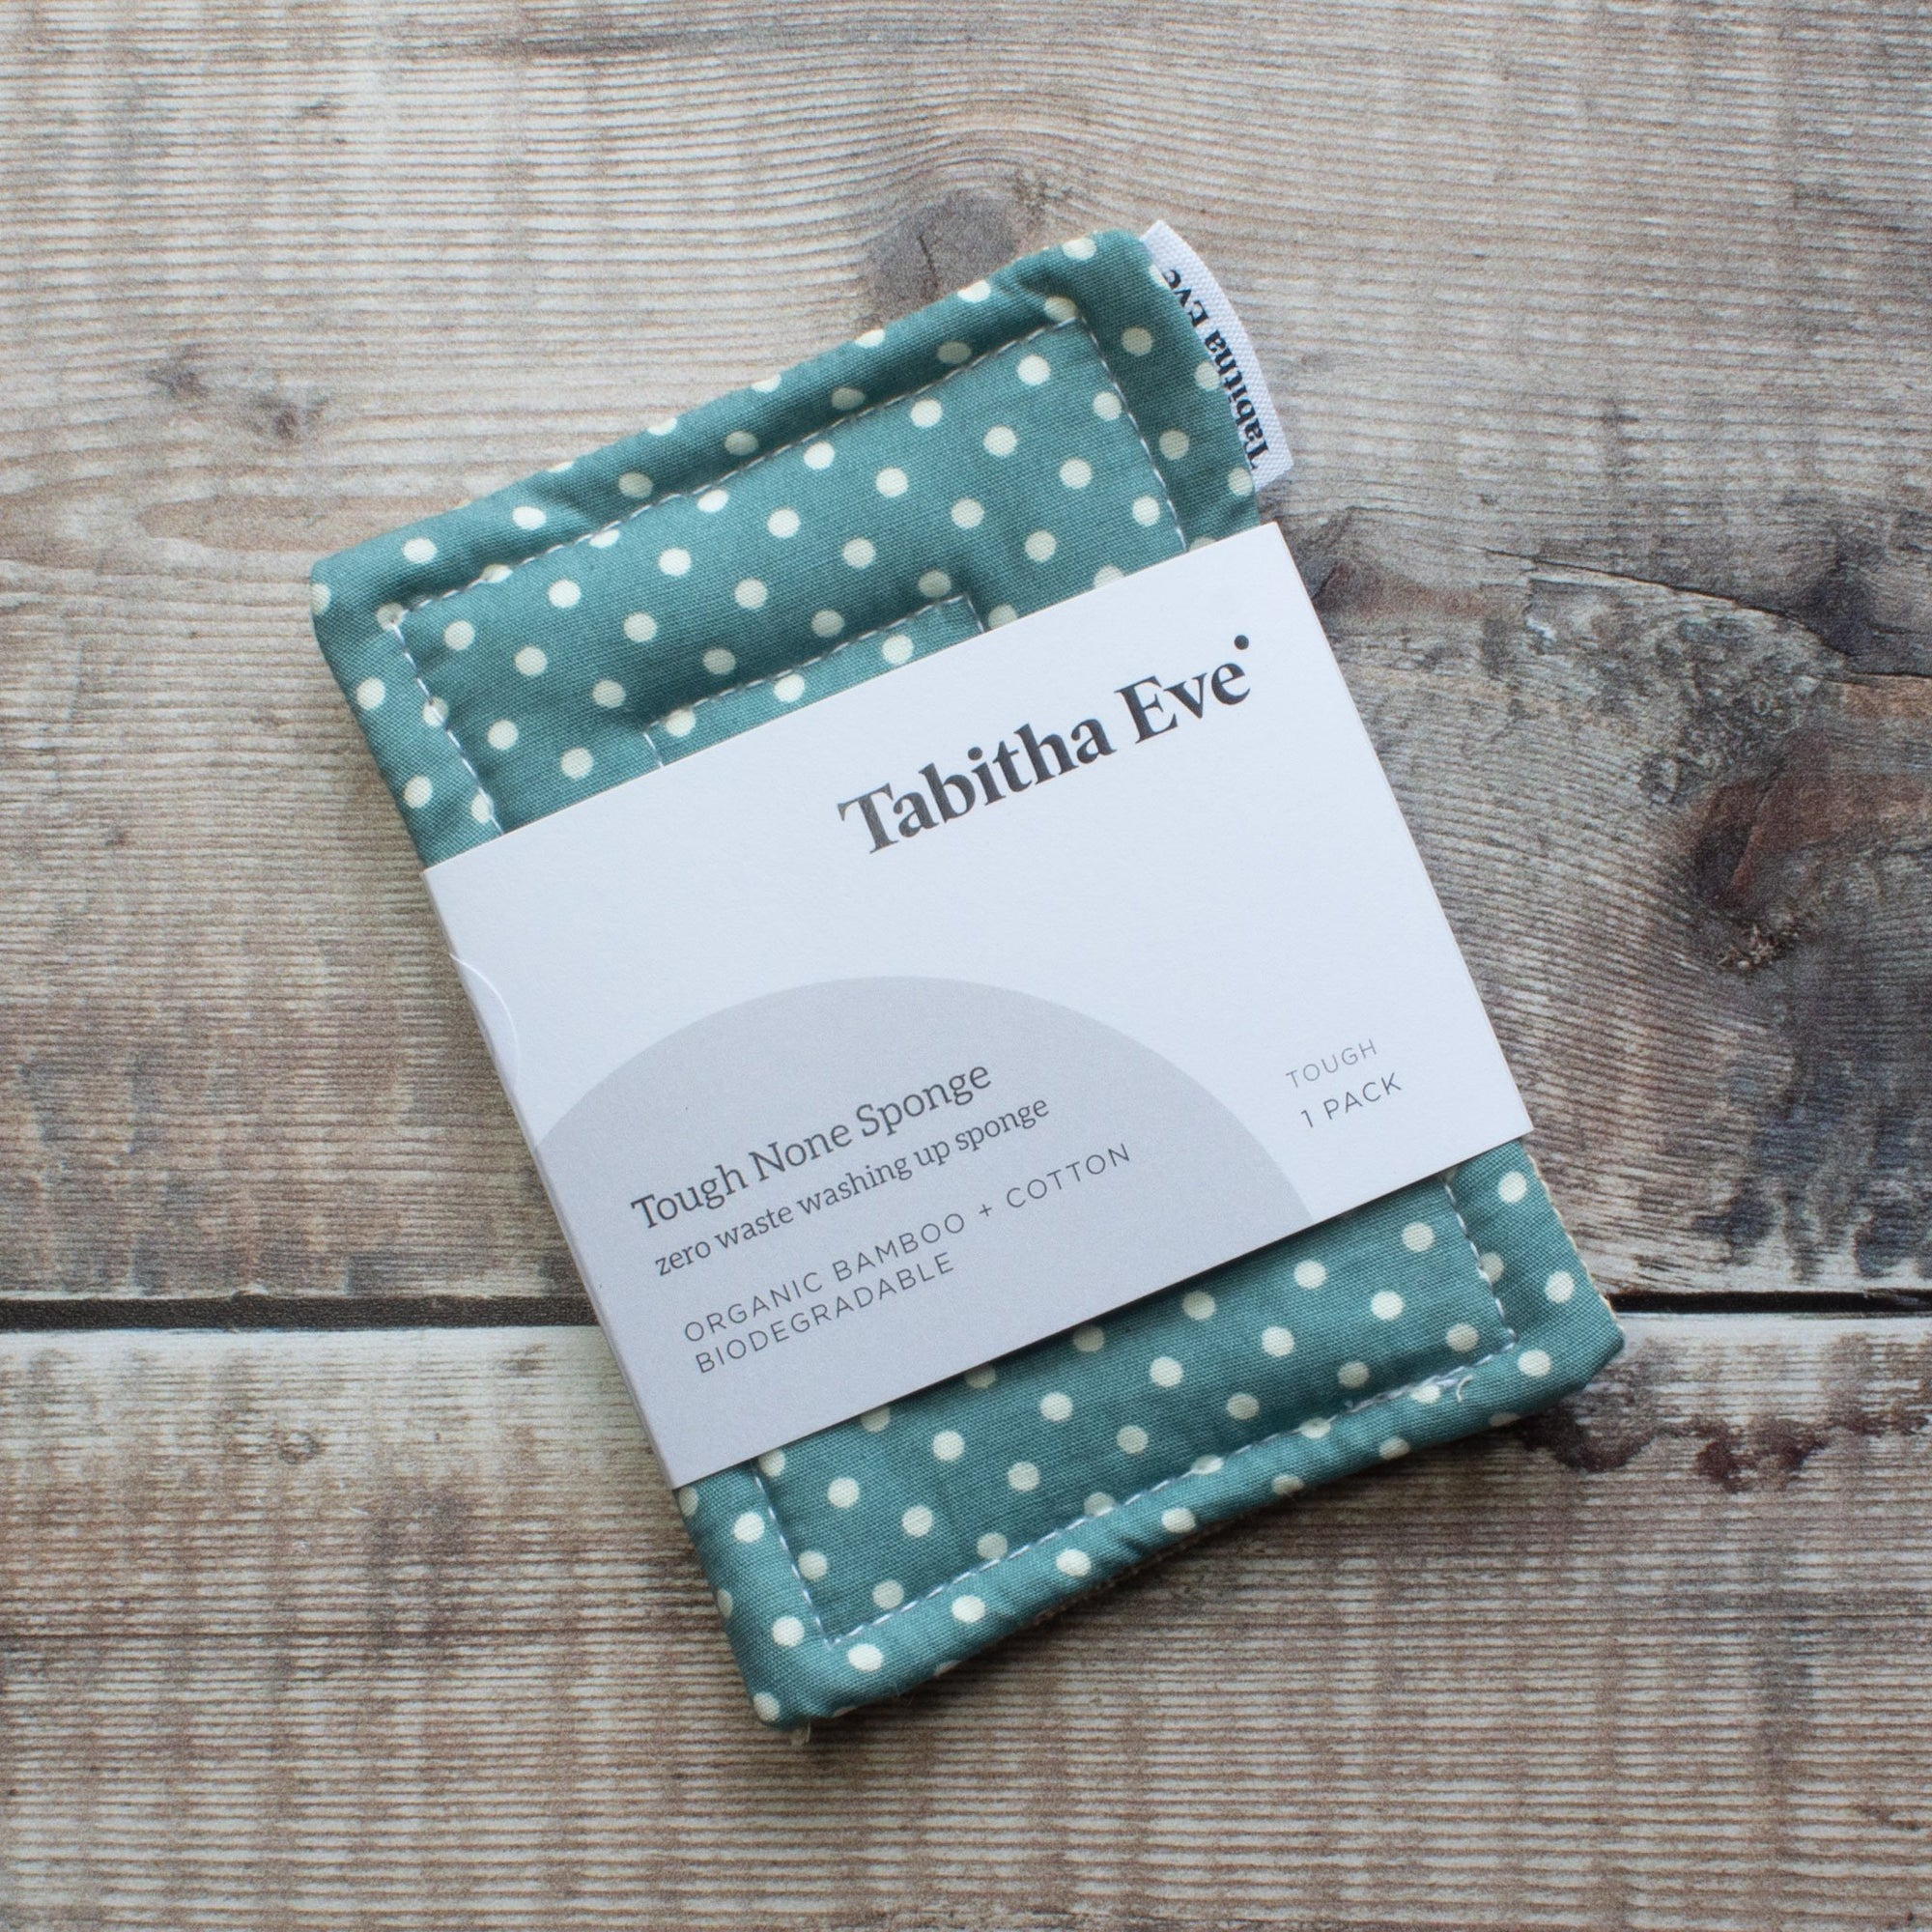 Tough None Sponge - Teal & White Dot | Washing Up Sponges - The Naughty Shrew